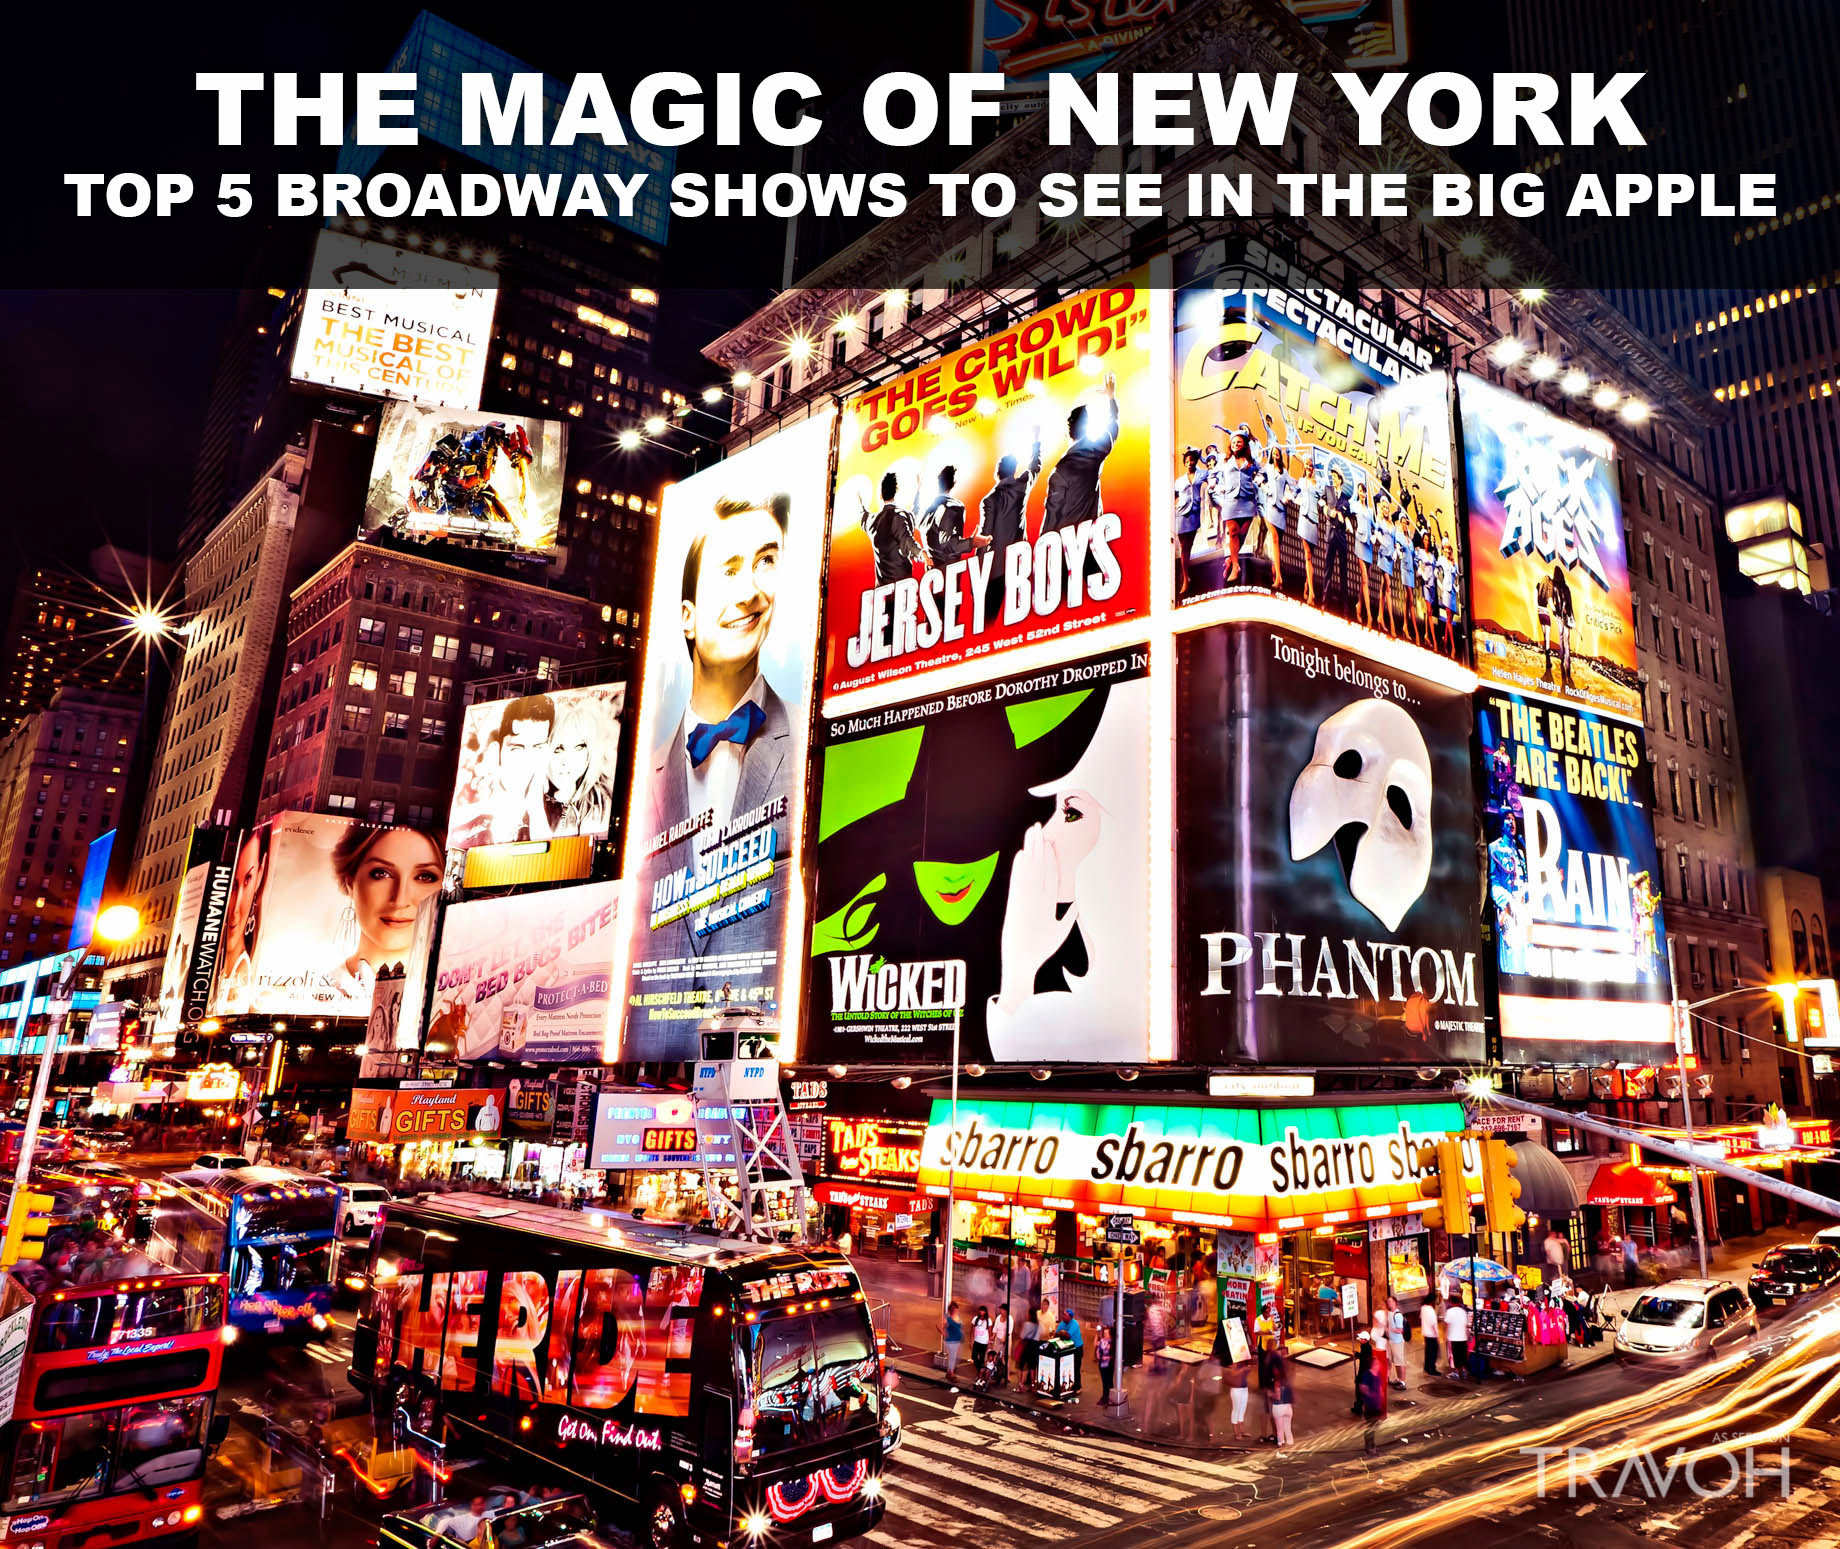 The Magic of New York - Top 5 Broadway Shows to See in the Big Apple